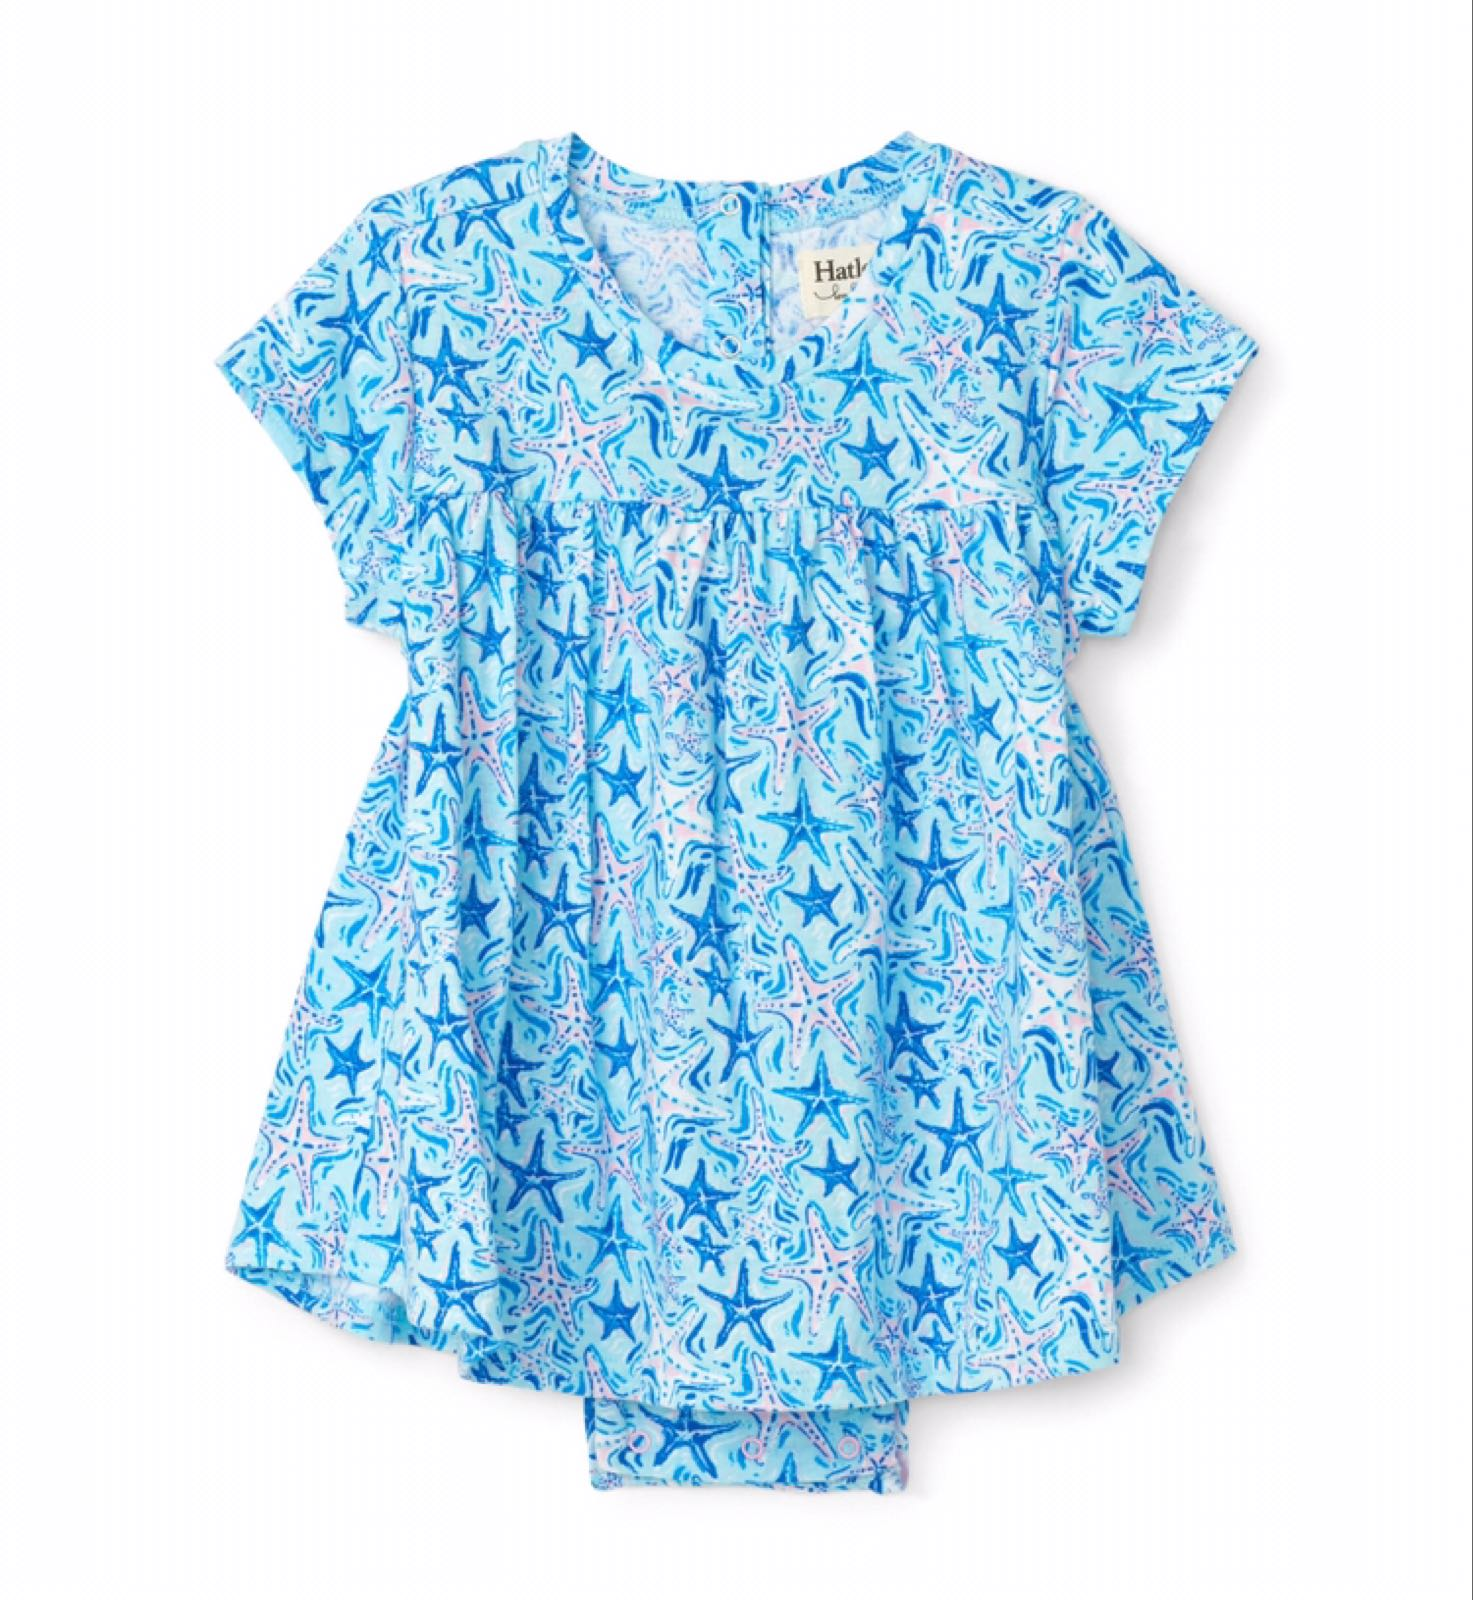 Hatley Soft Starfish Baby One-piece Dress